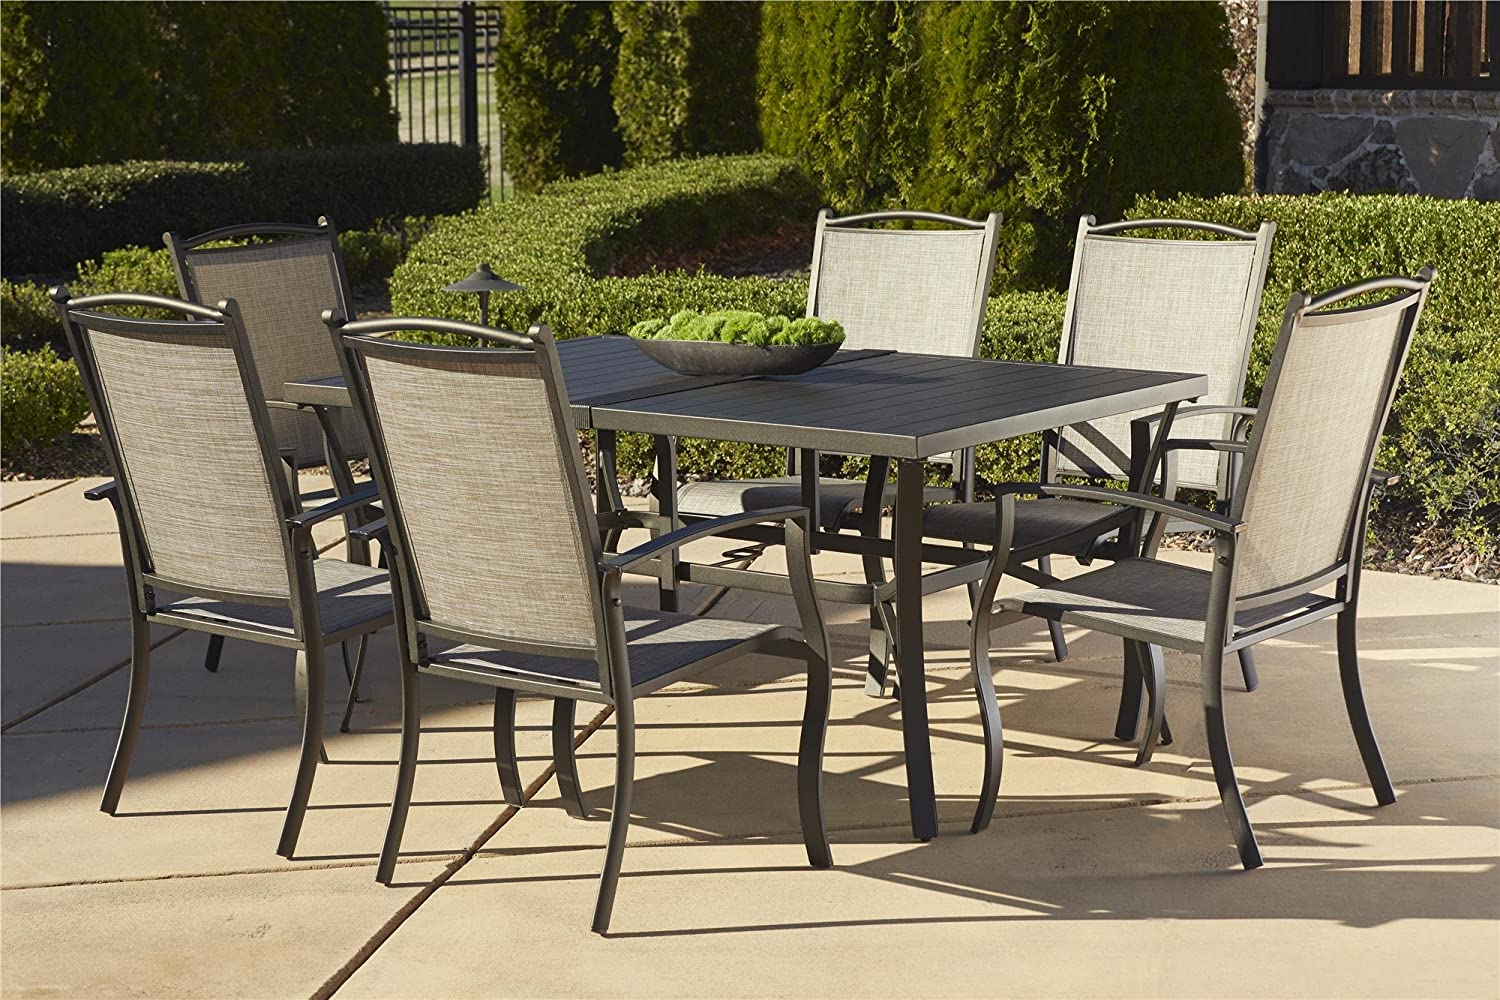 categories chairs depot the canada largo patio sets umbrella furniture with piece en p home dining charcoal in cushioned outdoors set rectangular